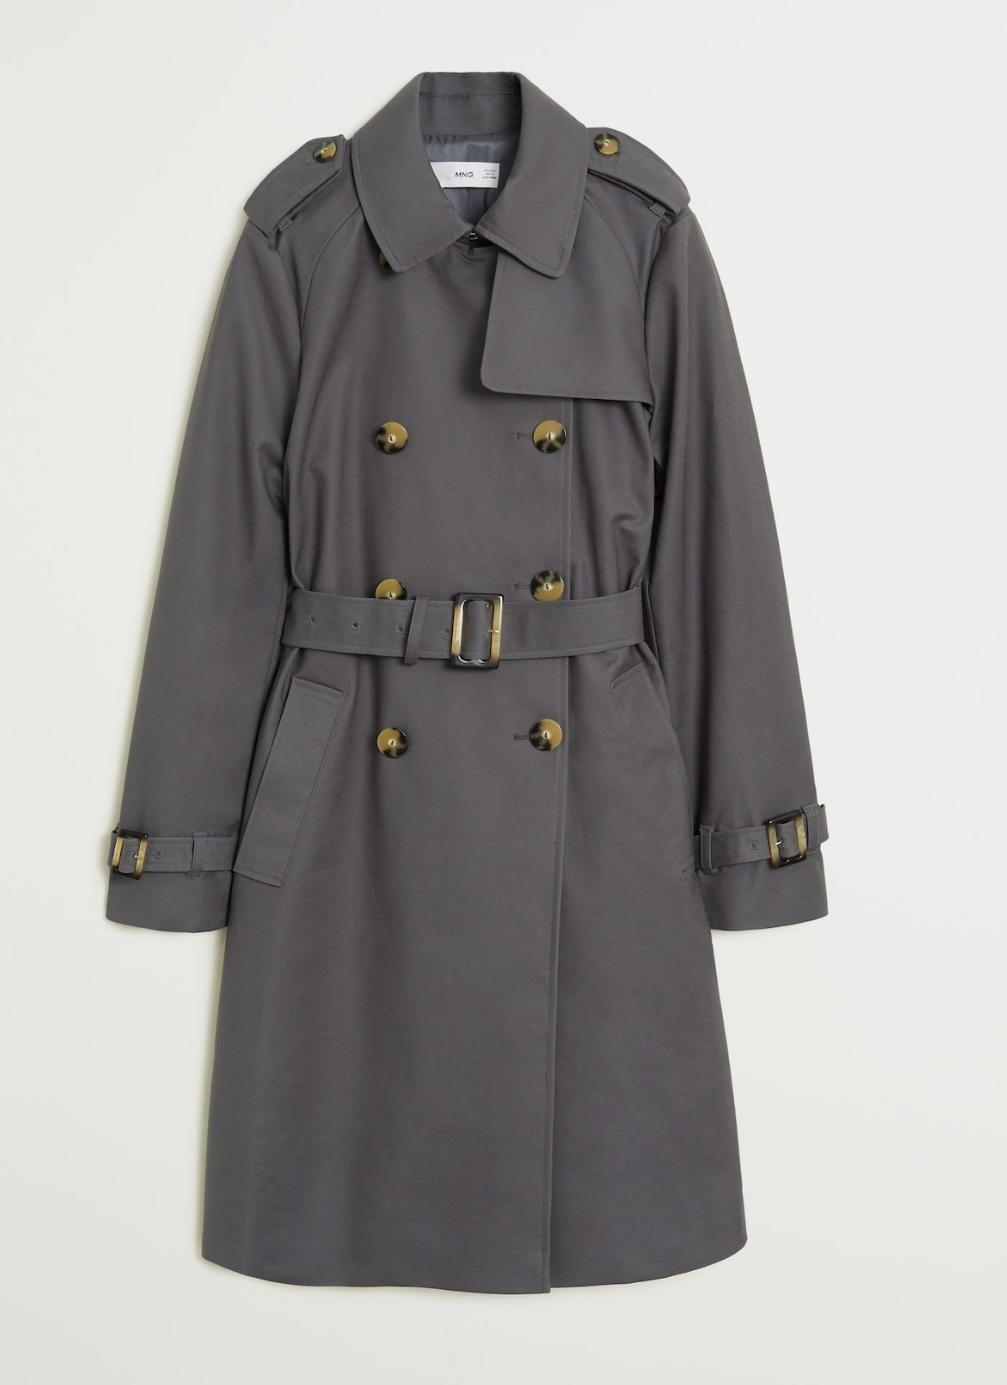 Trench doble botonadura color gris, de Mango (59'99€)